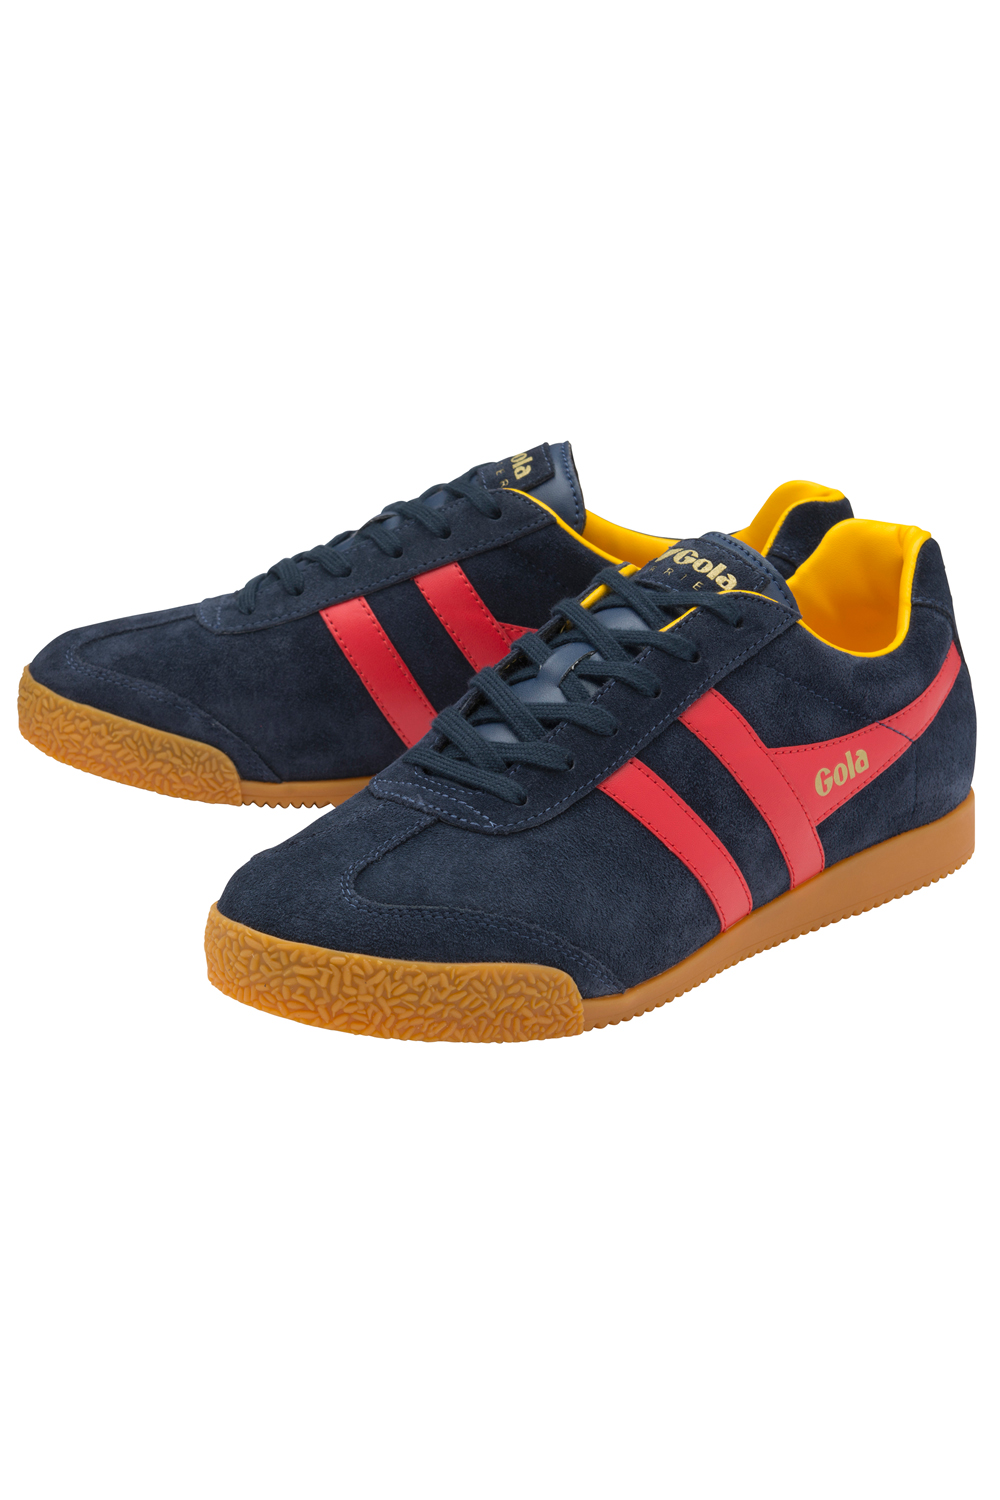 thumbnail 22 - Gola Harrier Suede Classic Vintage Lace-Up Sneakers Mens Trainers Low Top Shoes